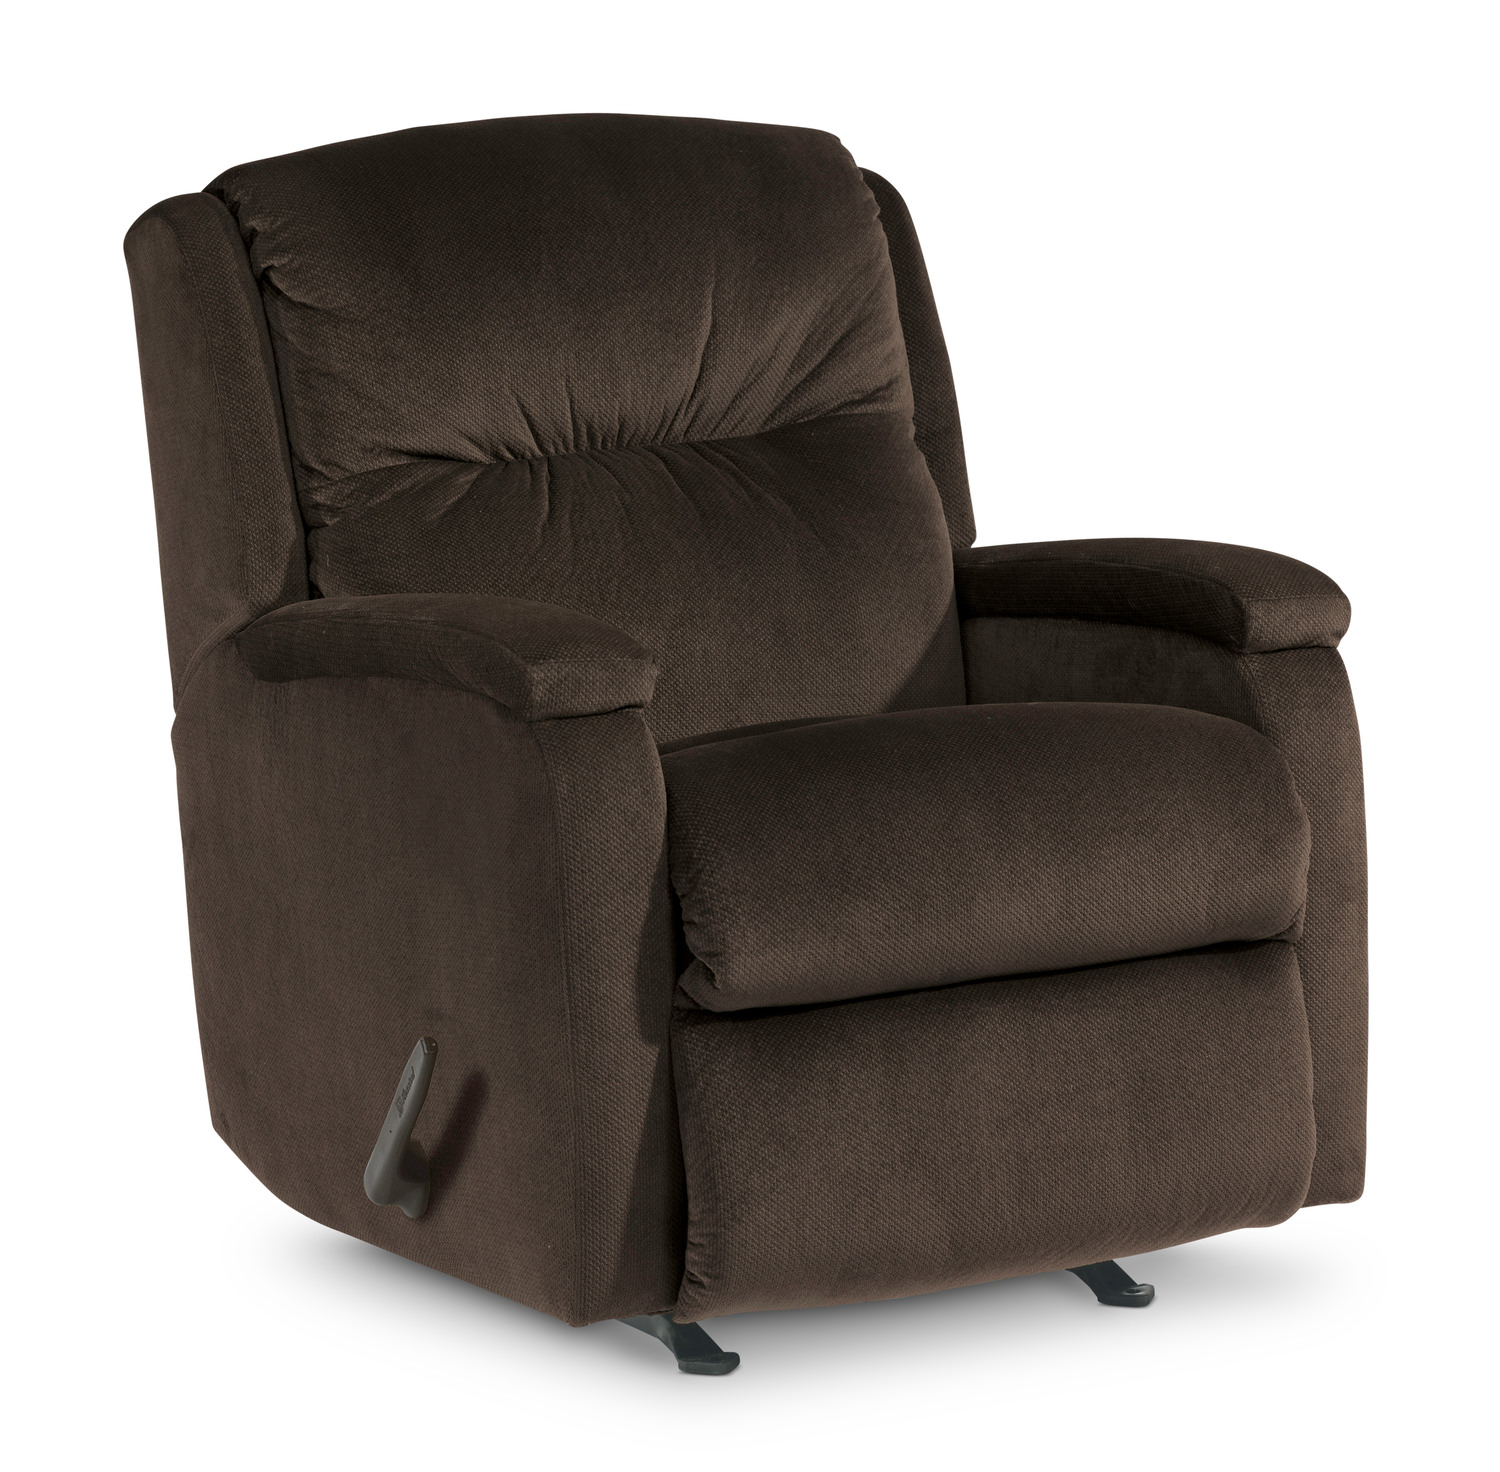 pics style nursery rocker glider to recliner styles get small for image and trend appealing swivel contemporary concept